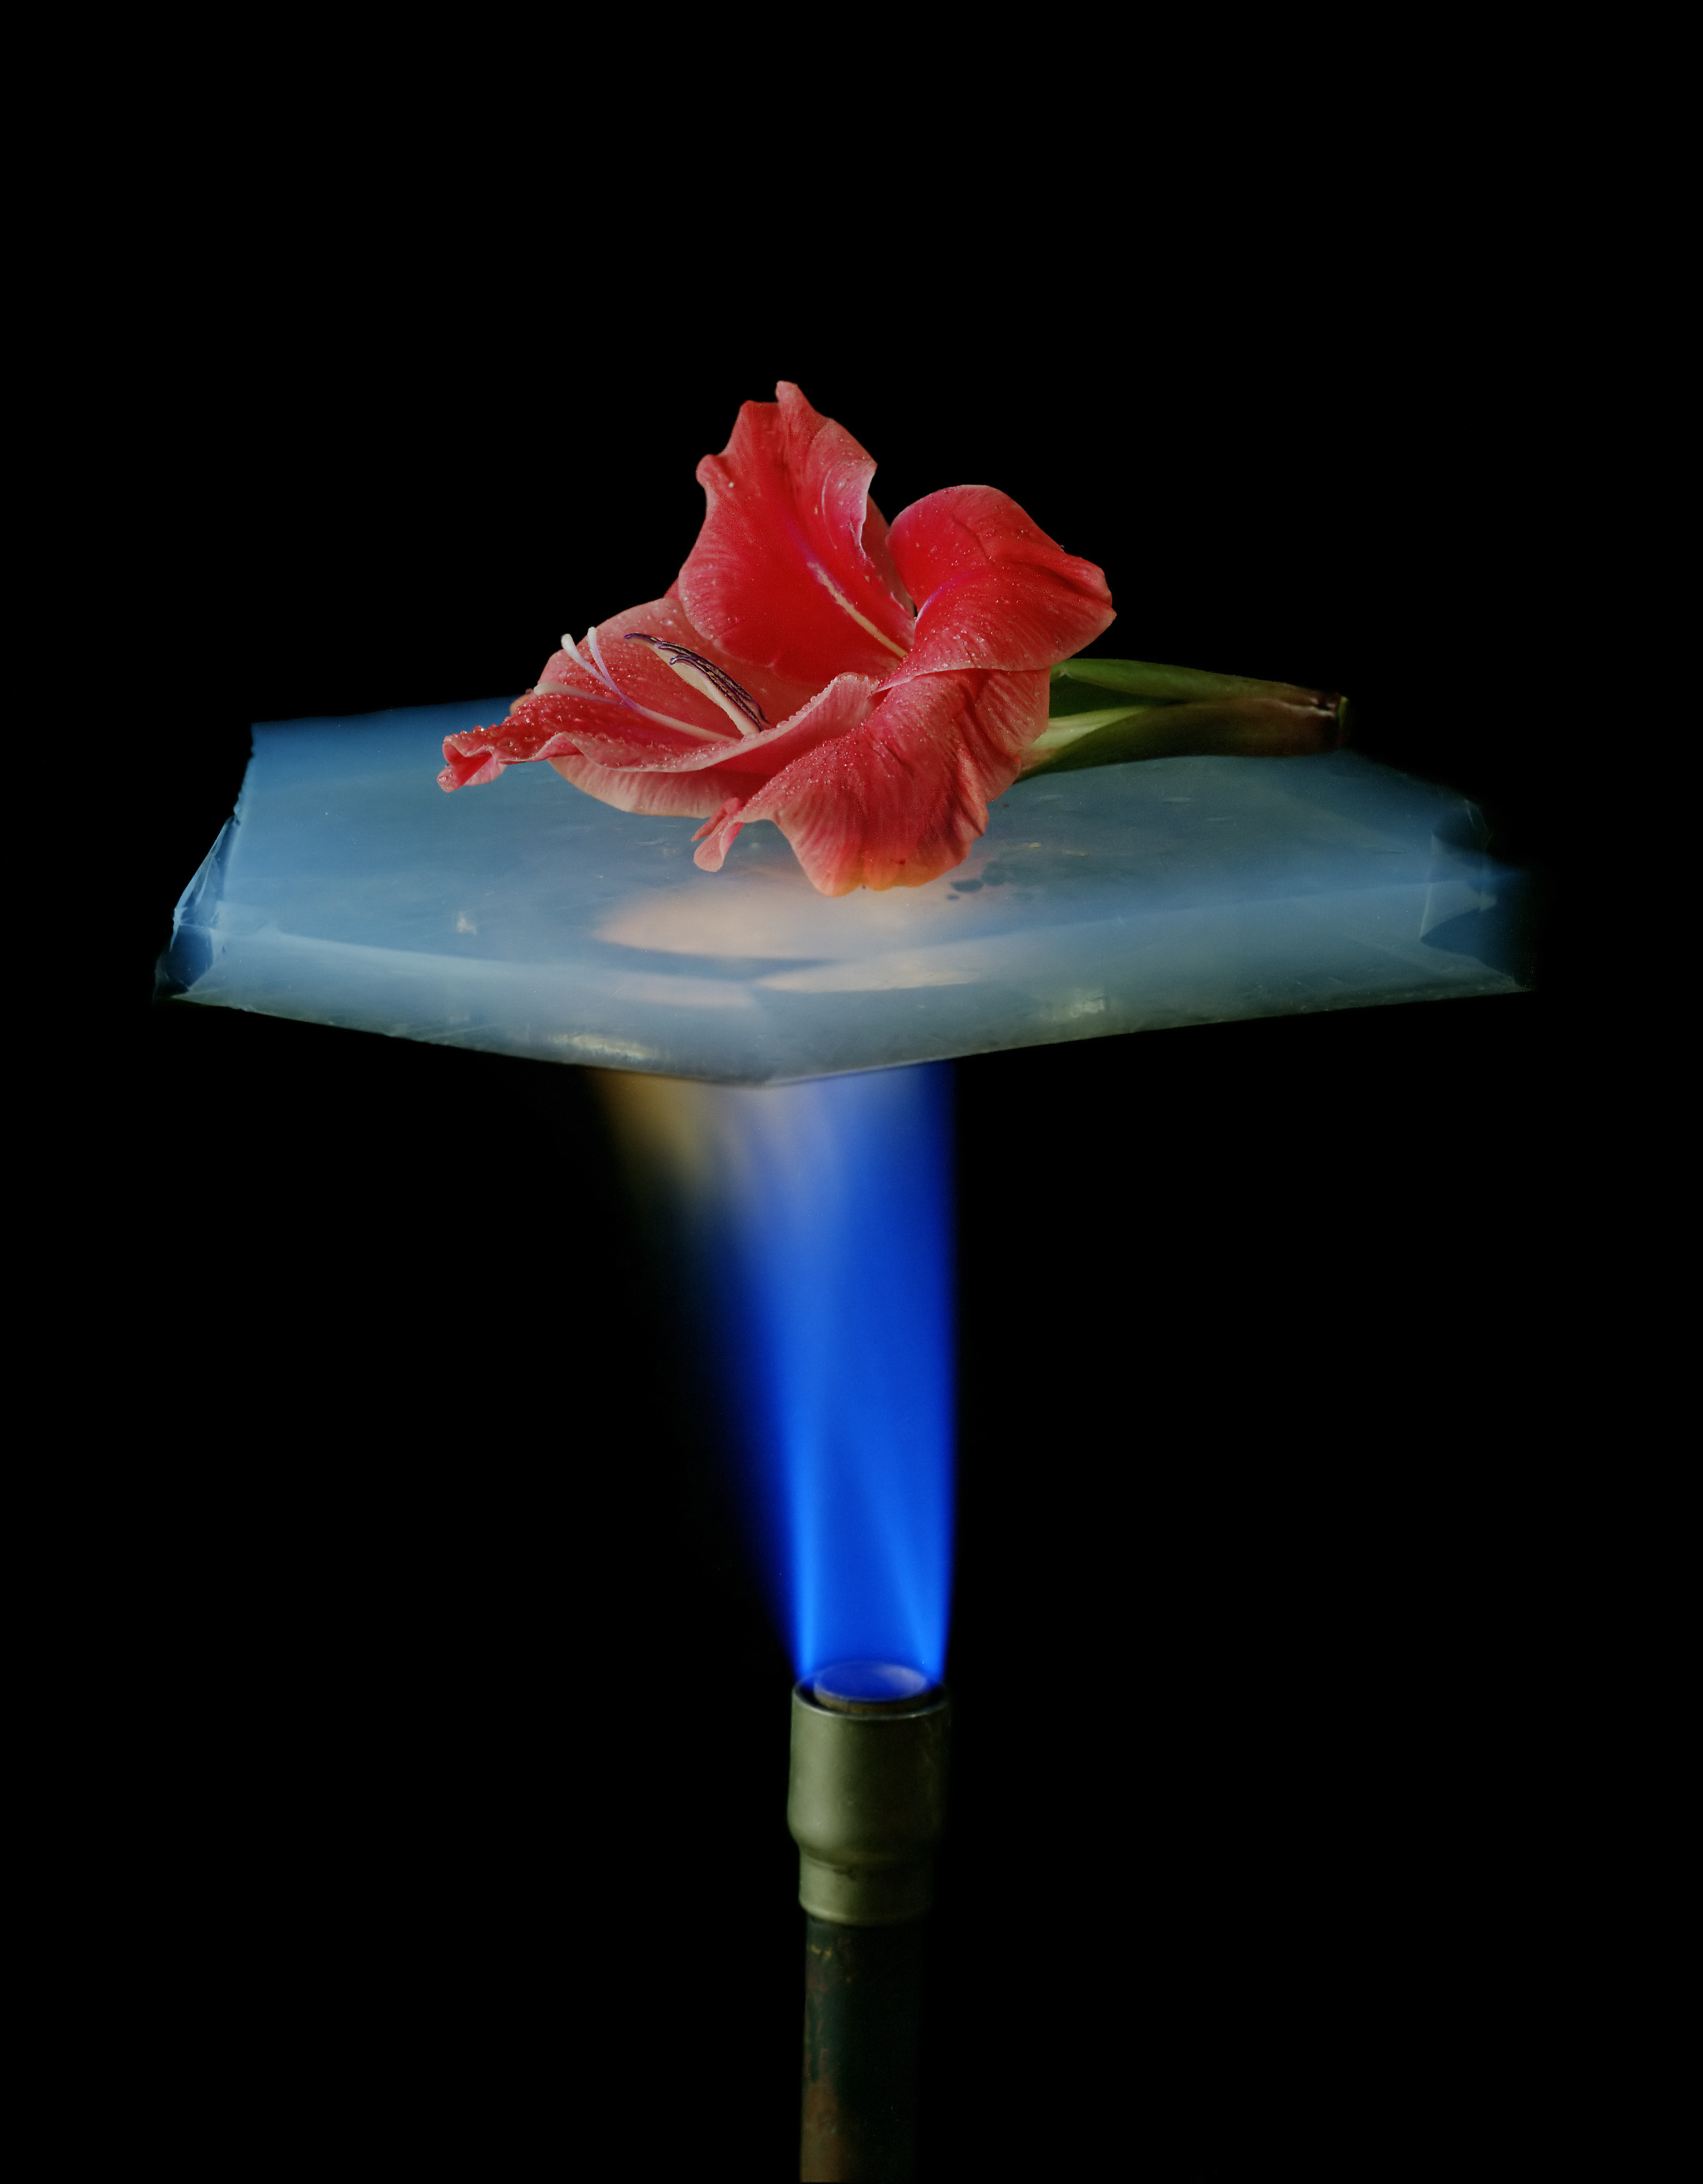 Aerogel Insulating A Flower From Thermal Energy or Fire